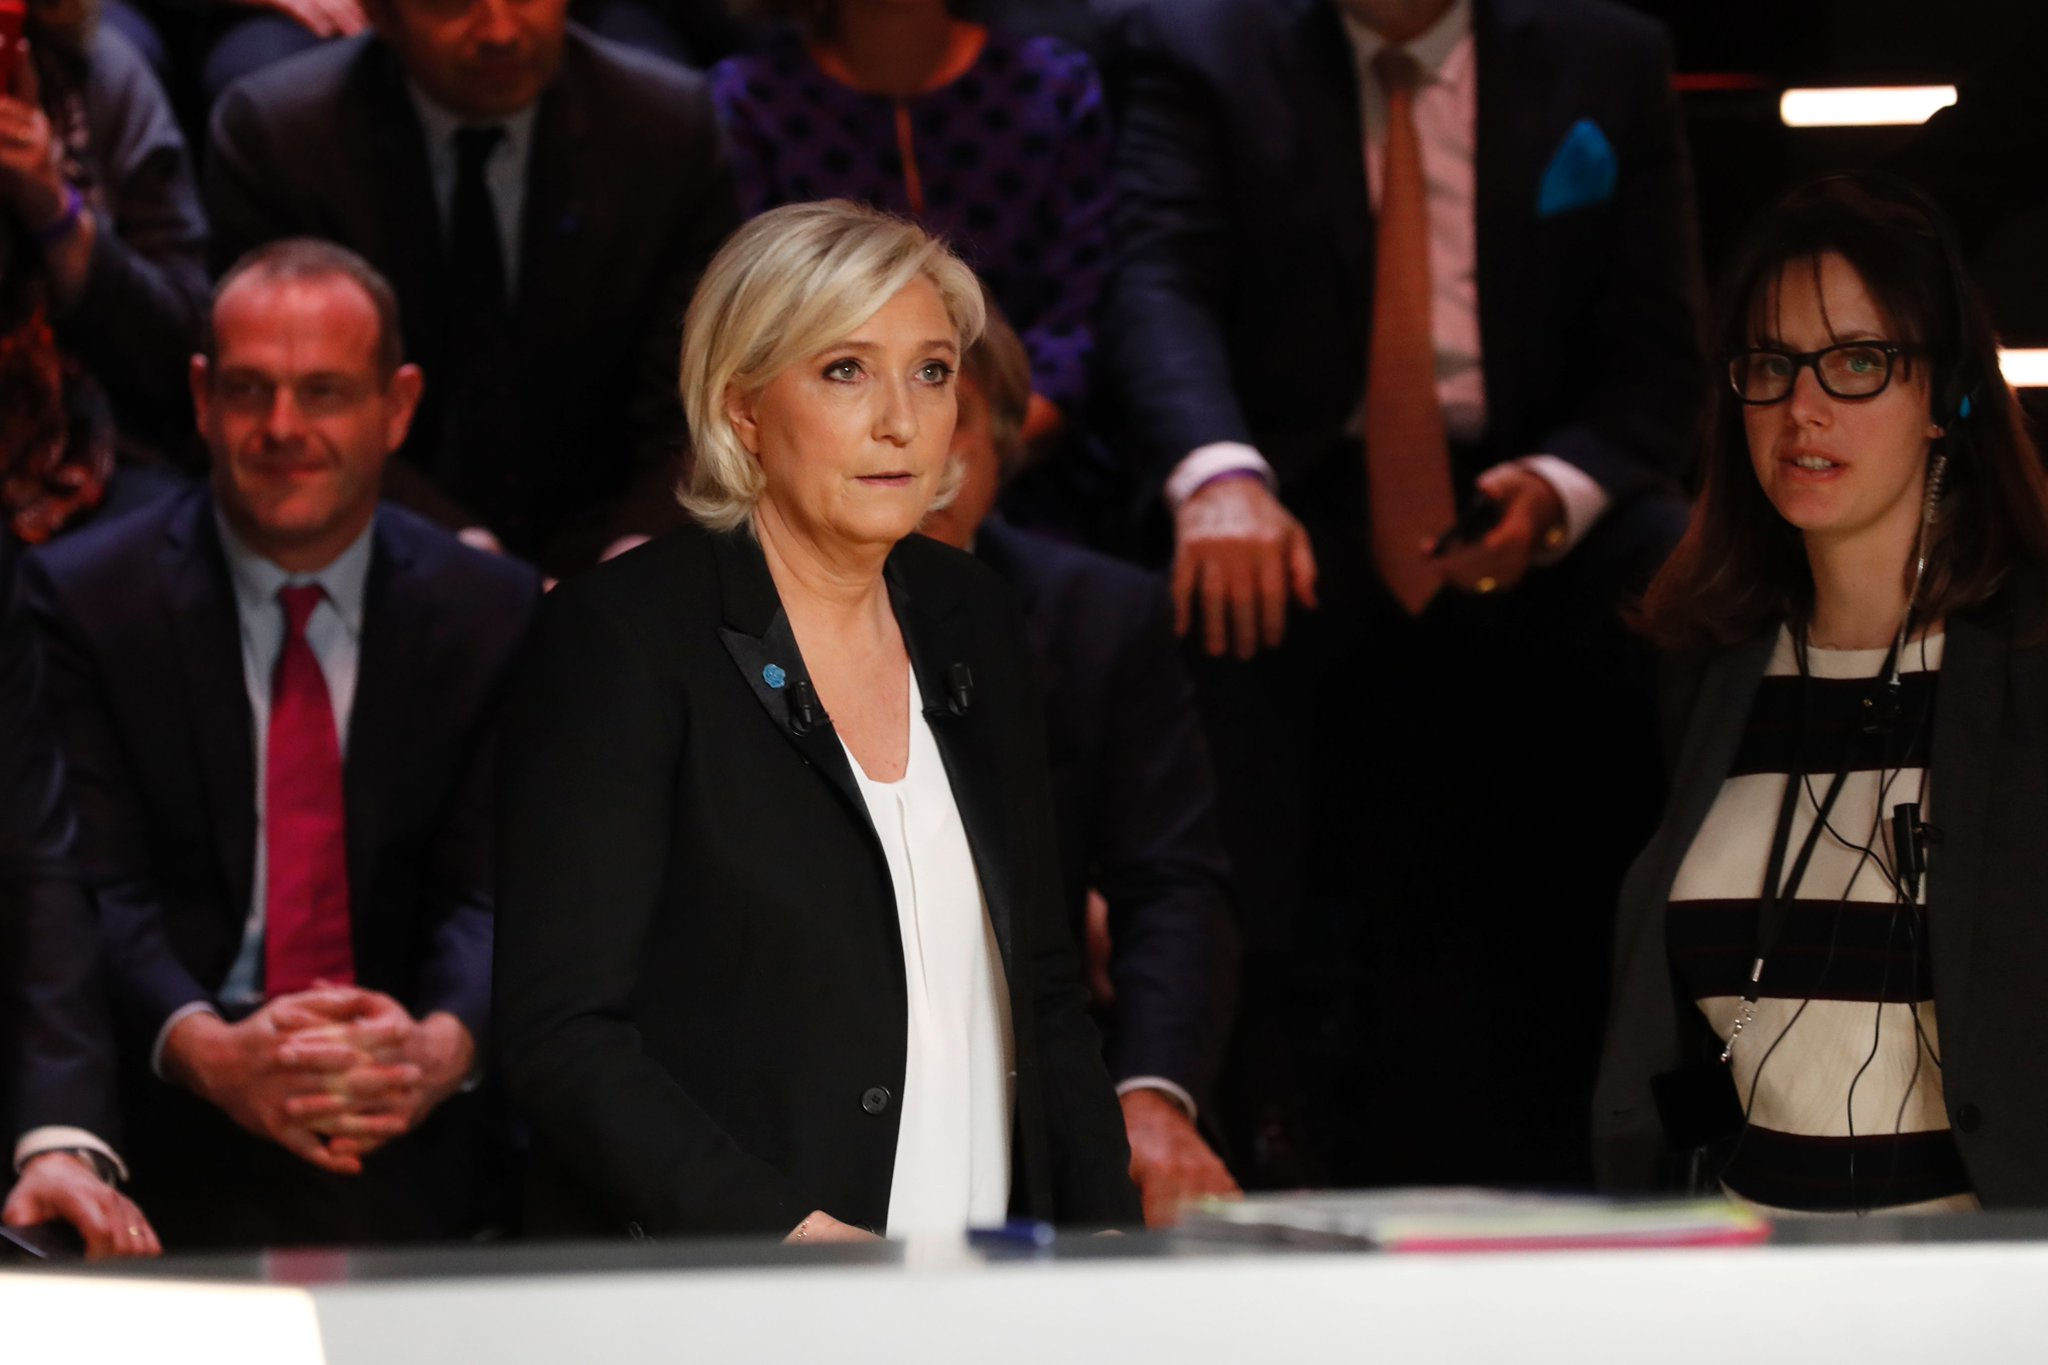 Marine Le Pen vows to stop 'illegal or legal' immigration to France https://t.co/pUB1FhKkhT #LeGrandDebat #DebatTF1 https://t.co/oEBIl9A4Xz